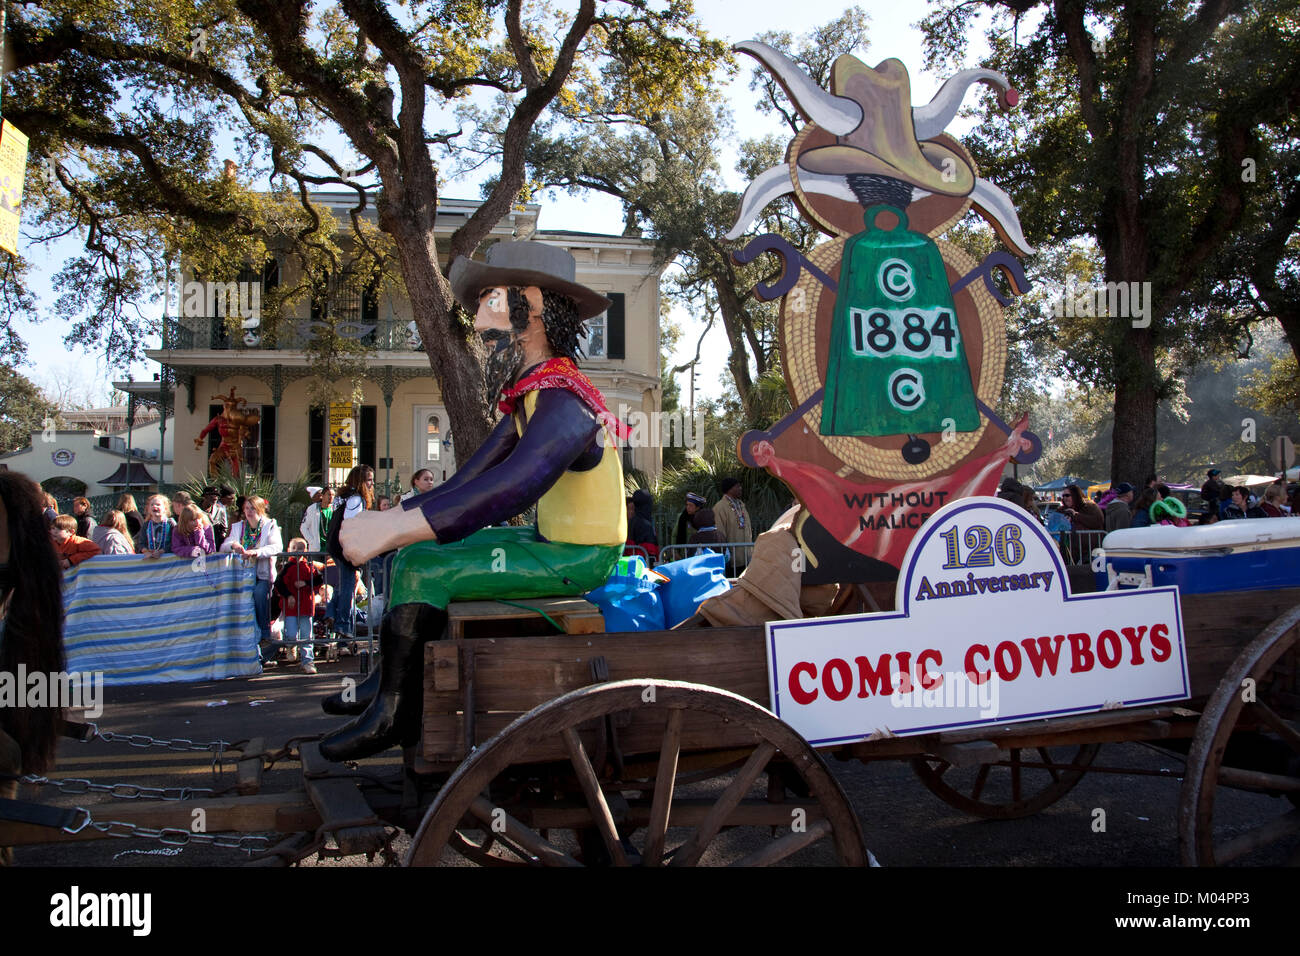 Comic Cowboys Float Stockbild